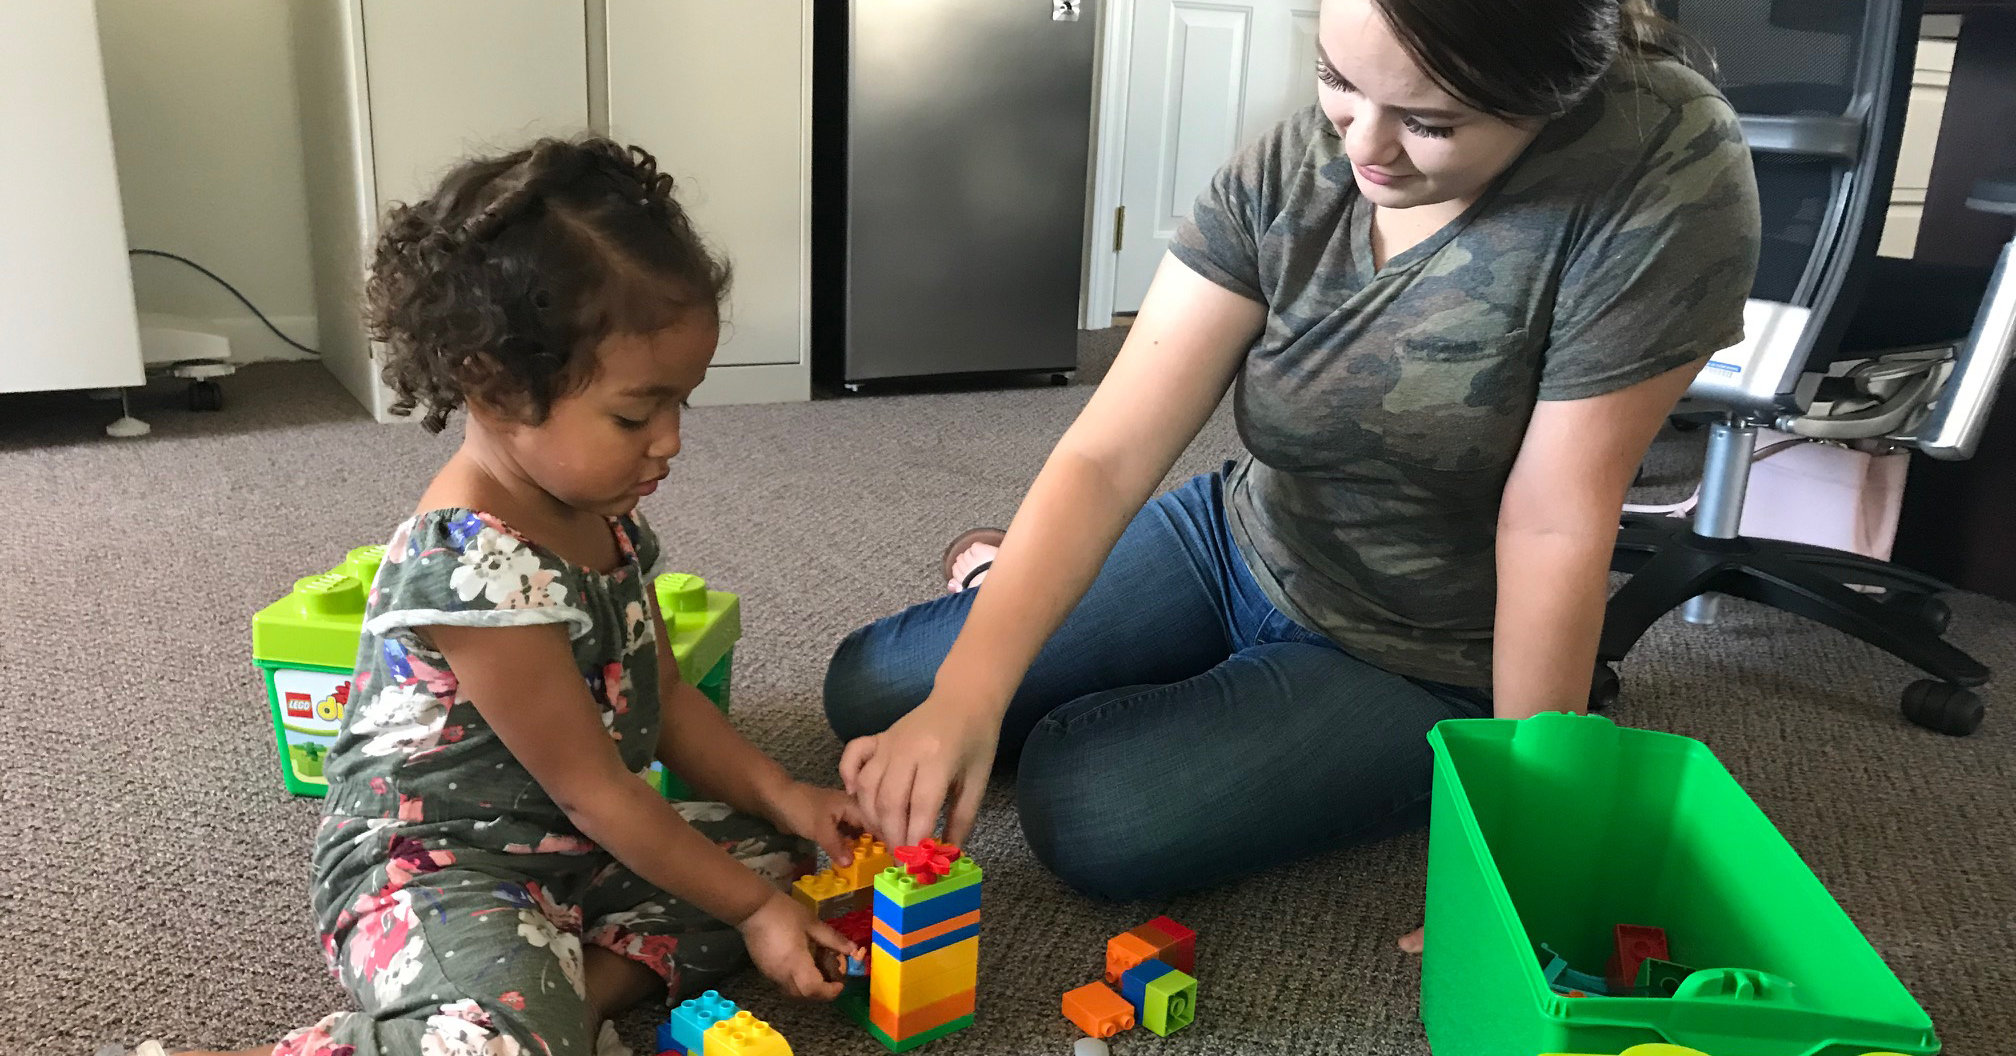 Daughter and mother playing with blocks